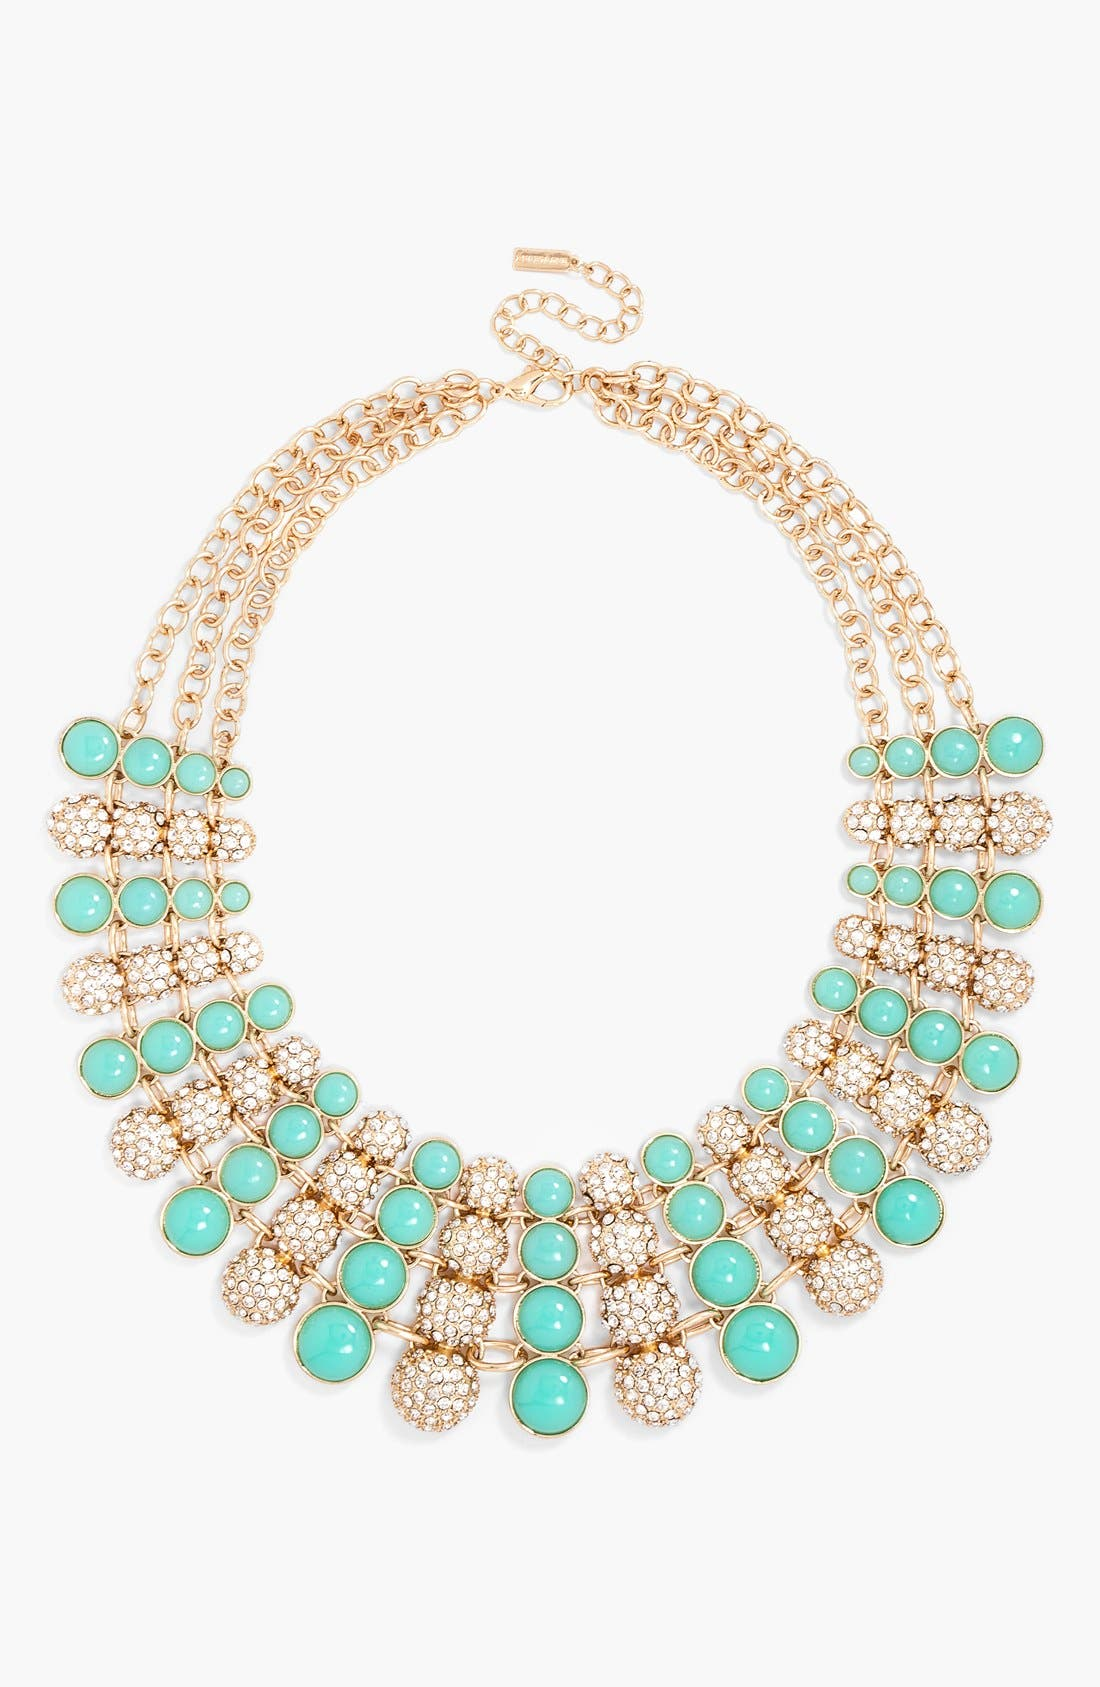 Alternate Image 1 Selected - BaubleBar 'Gold Nonpareil' Necklace